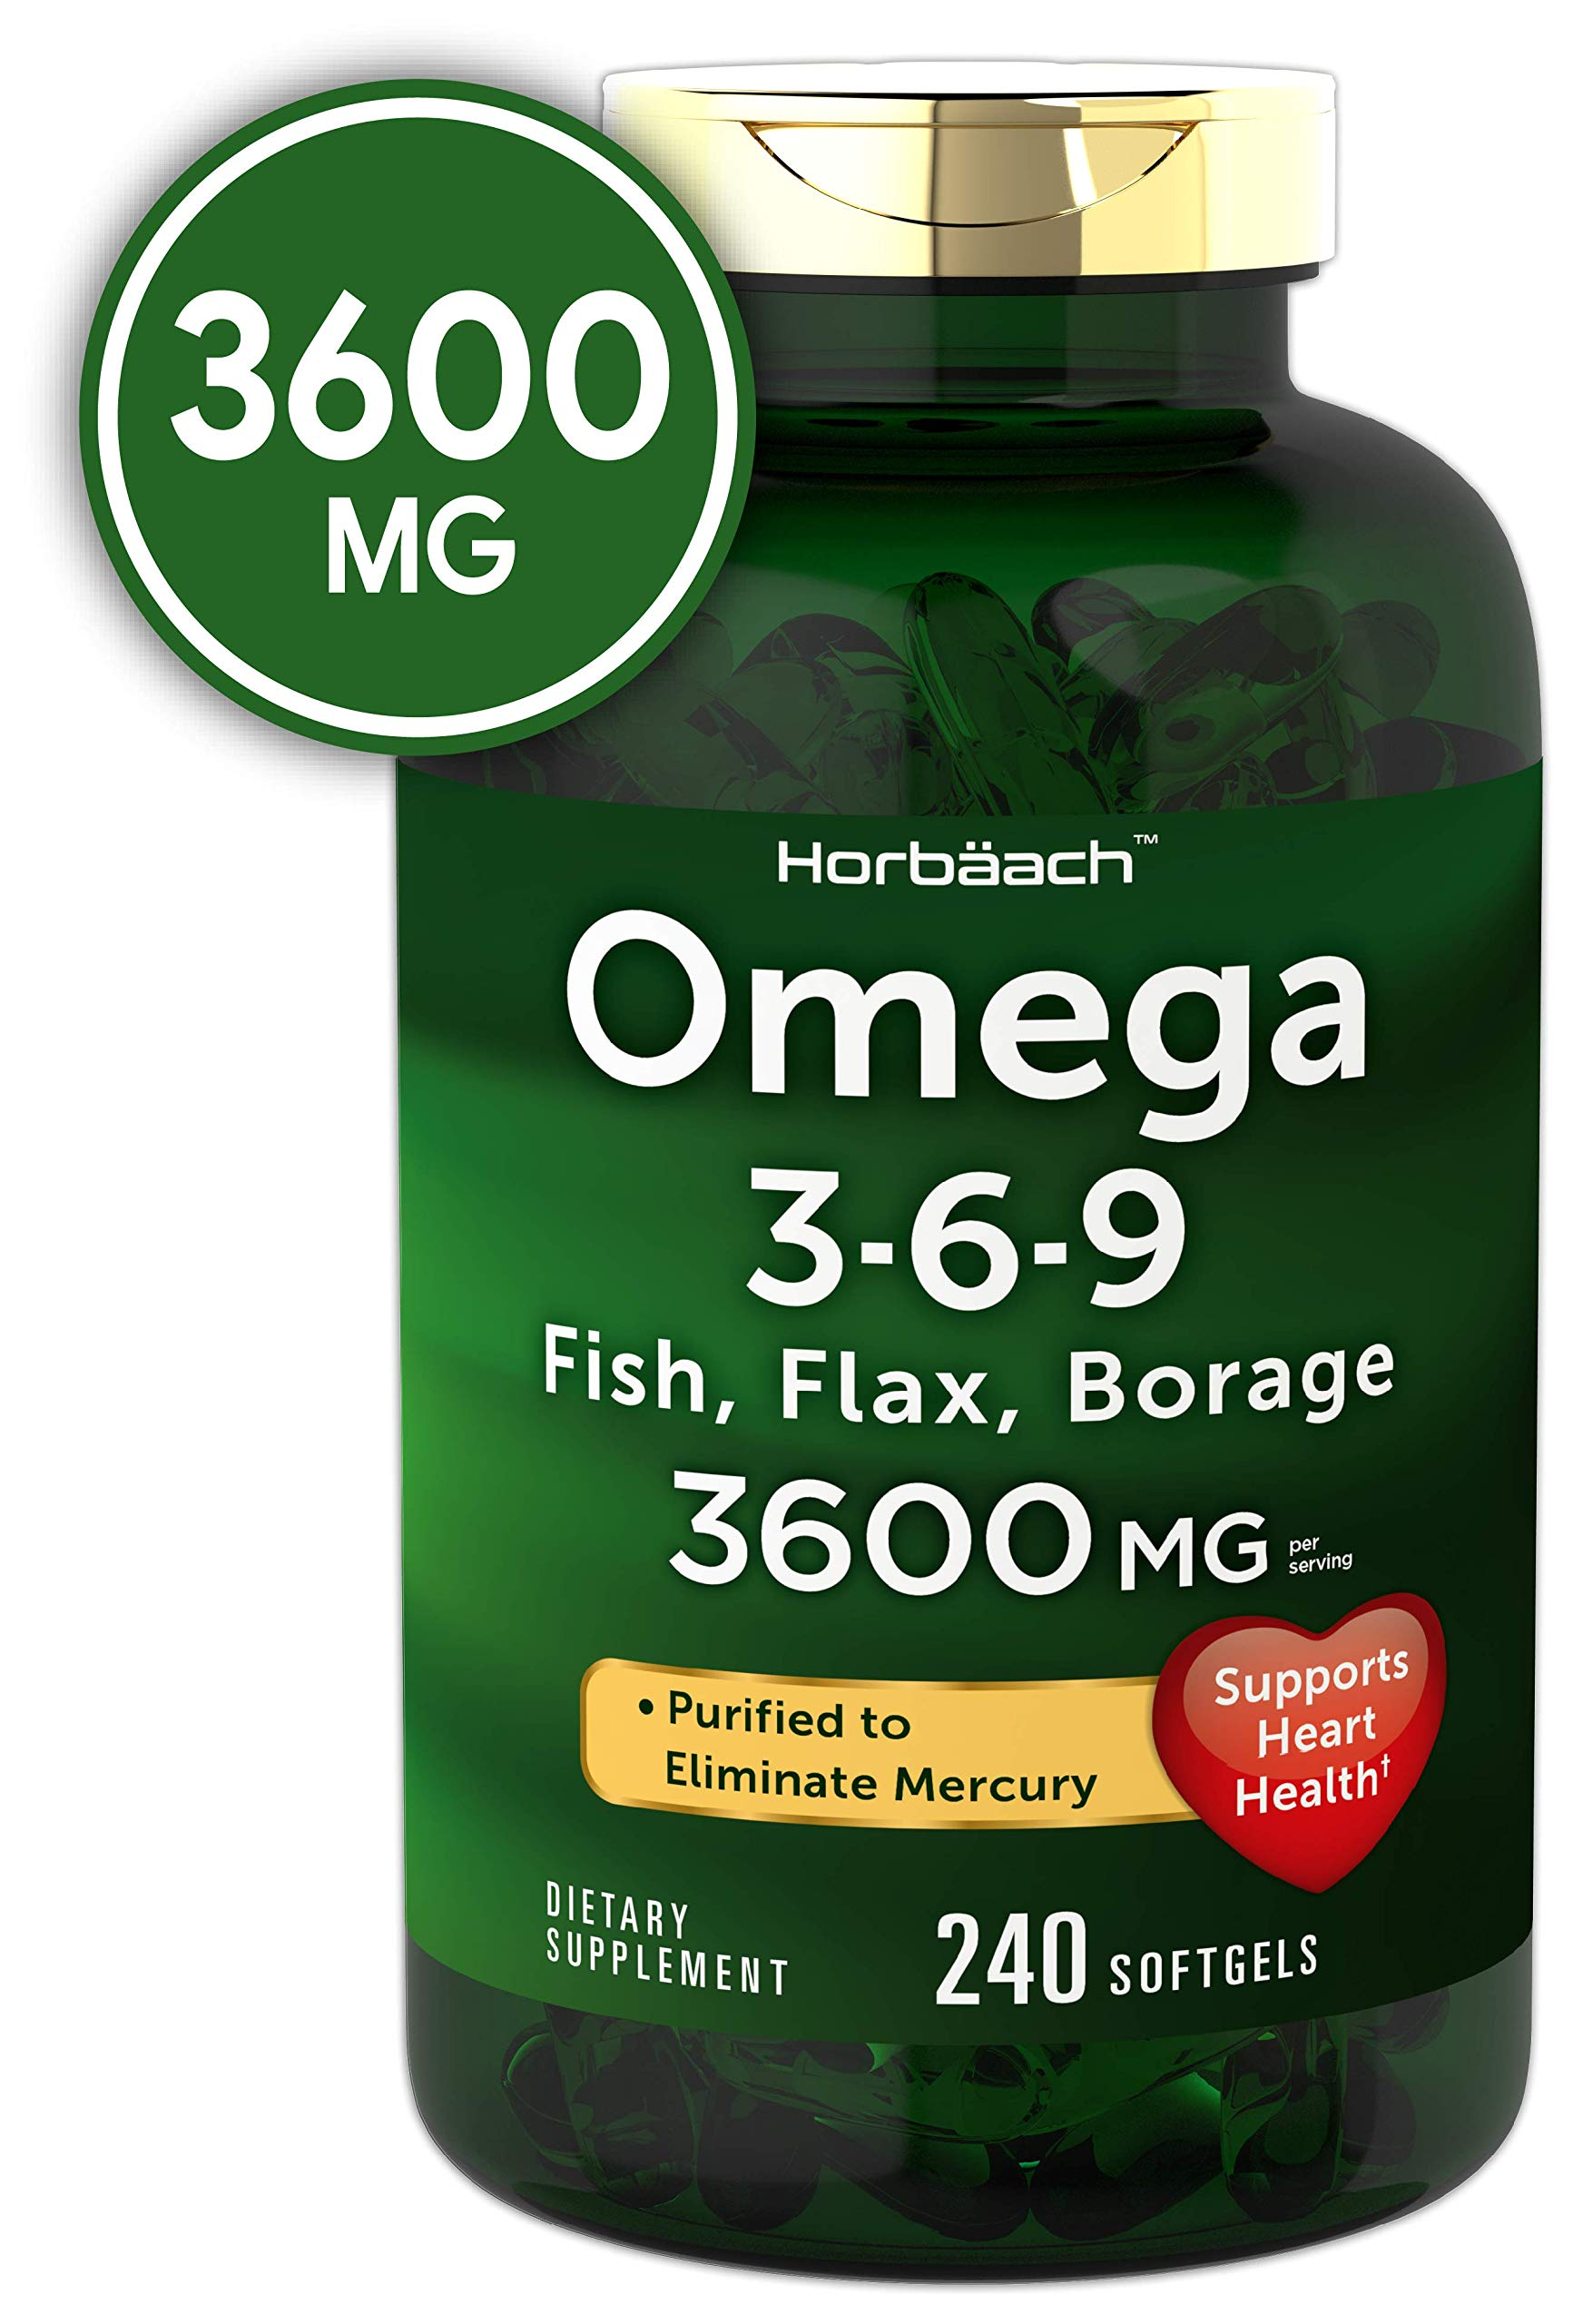 Triple Omega 3-6-9 3600 mg 240 Softgels   from Fish, Flaxseed, Borage Oils   Non-GMO & Gluten Free   by Horbaach by Horbäach